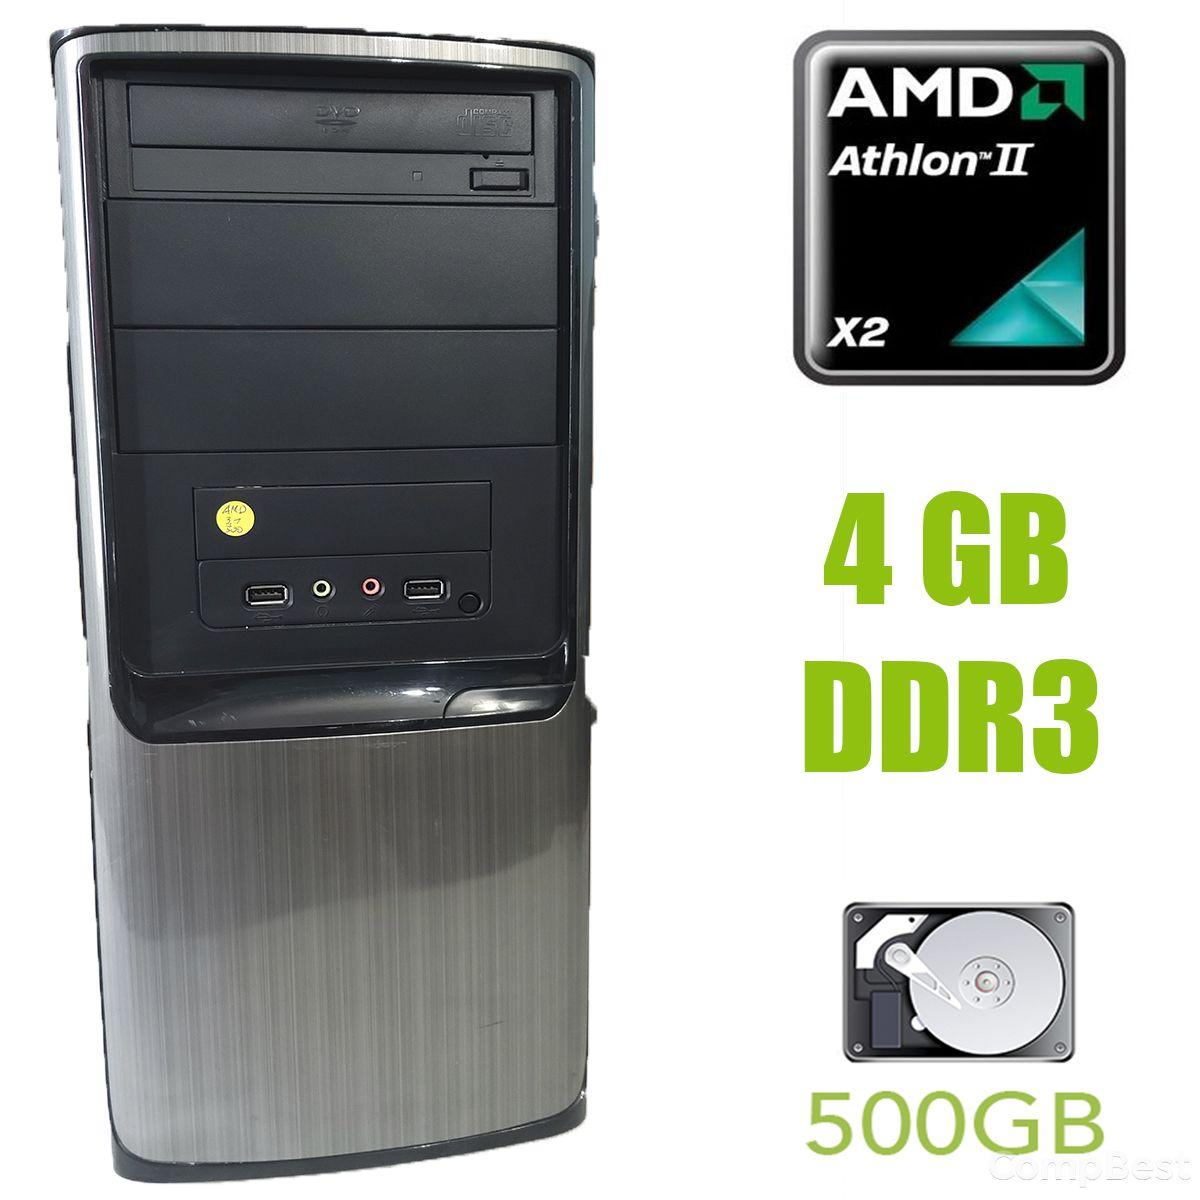 AMD Tower / AMD Athlon x2 255 (2 ядра по 3.1GHz) / 4GB DDR3 / 500GB HDD / HEC 350W